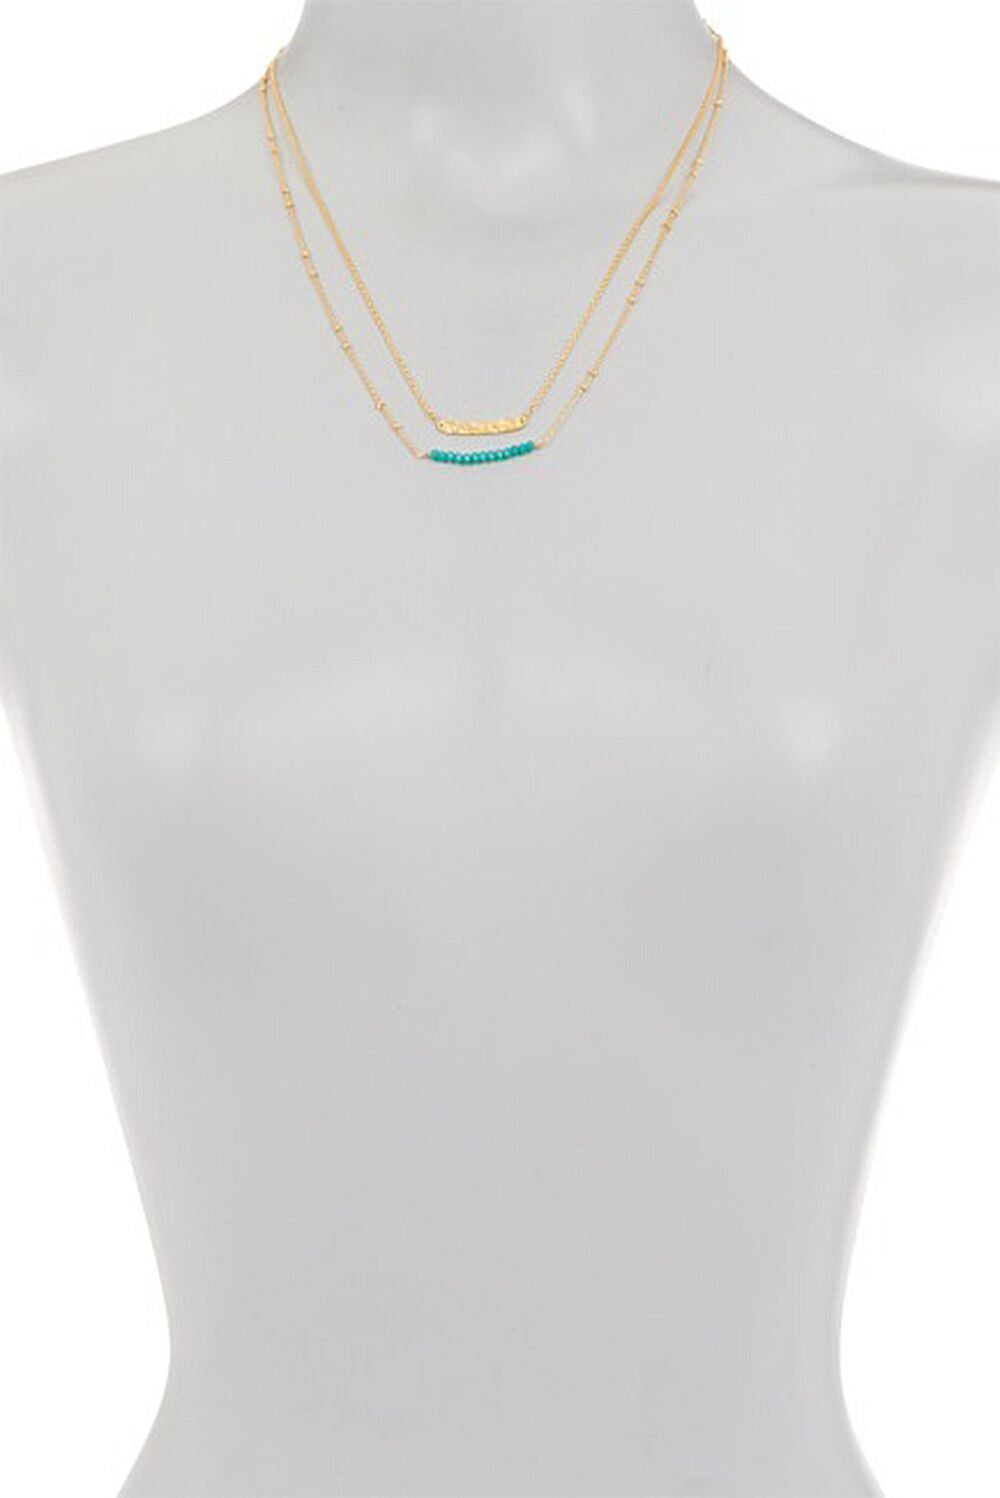 Laguna Collections Double Stranded Aqua Chalcedony Stones with Bar Necklace